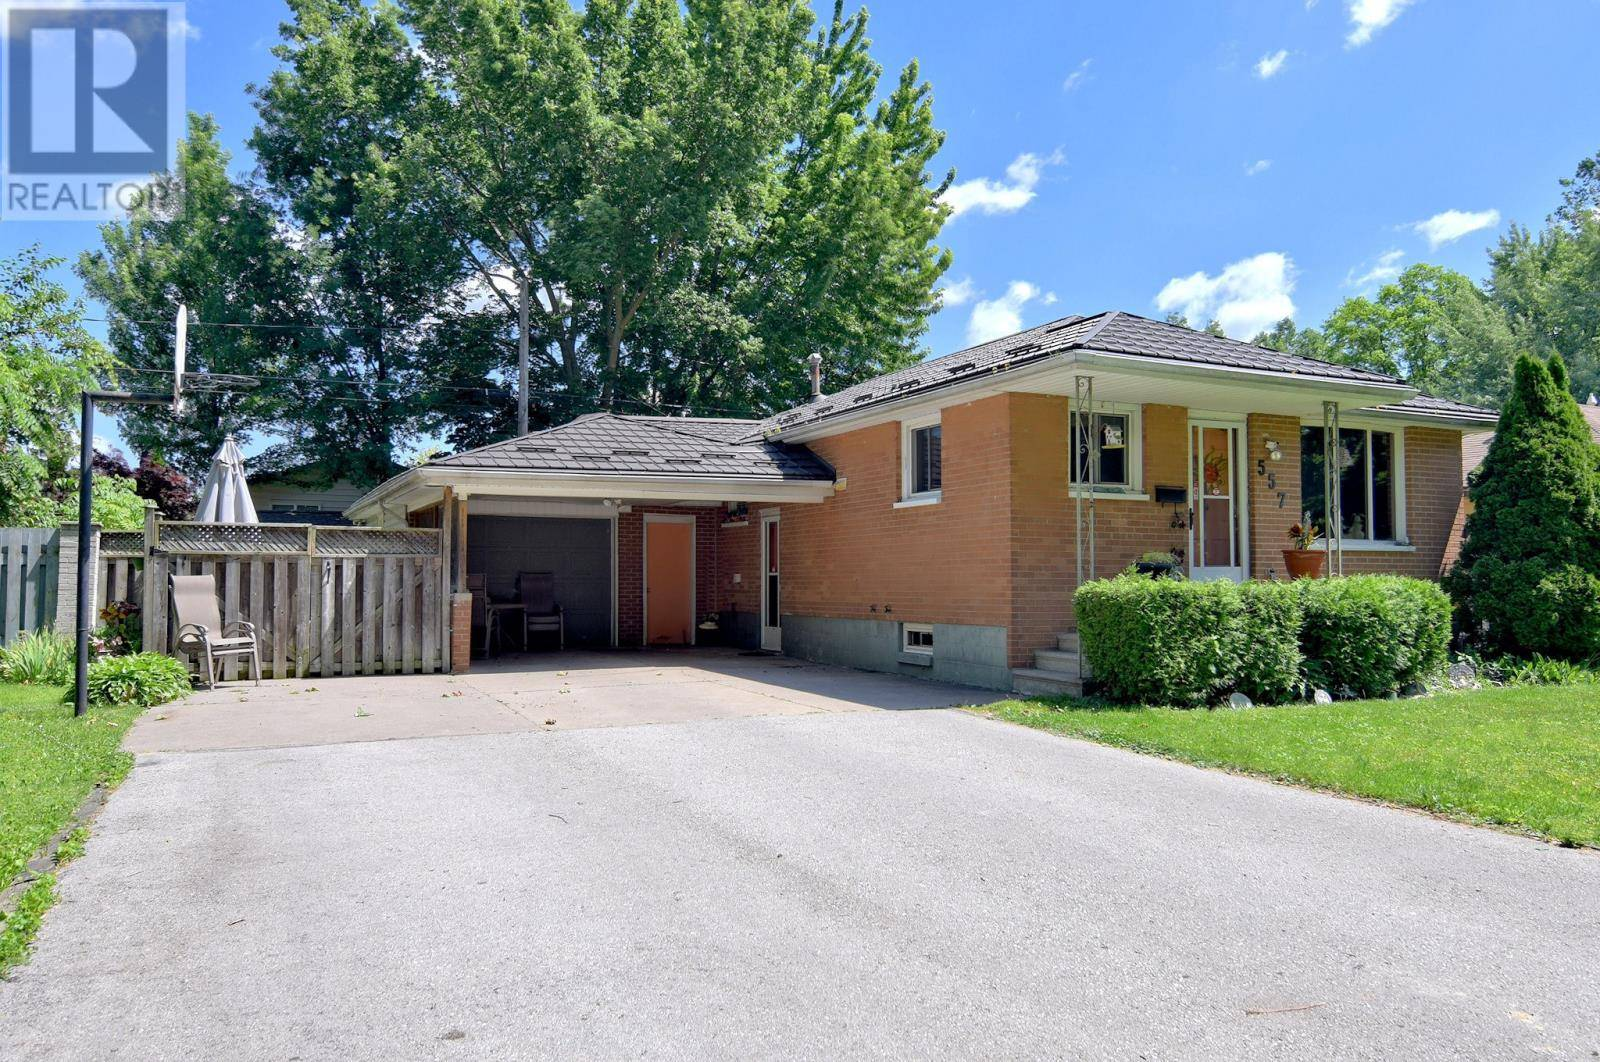 House for sale at 557 Laurier Dr Lasalle Ontario - MLS: 19023328